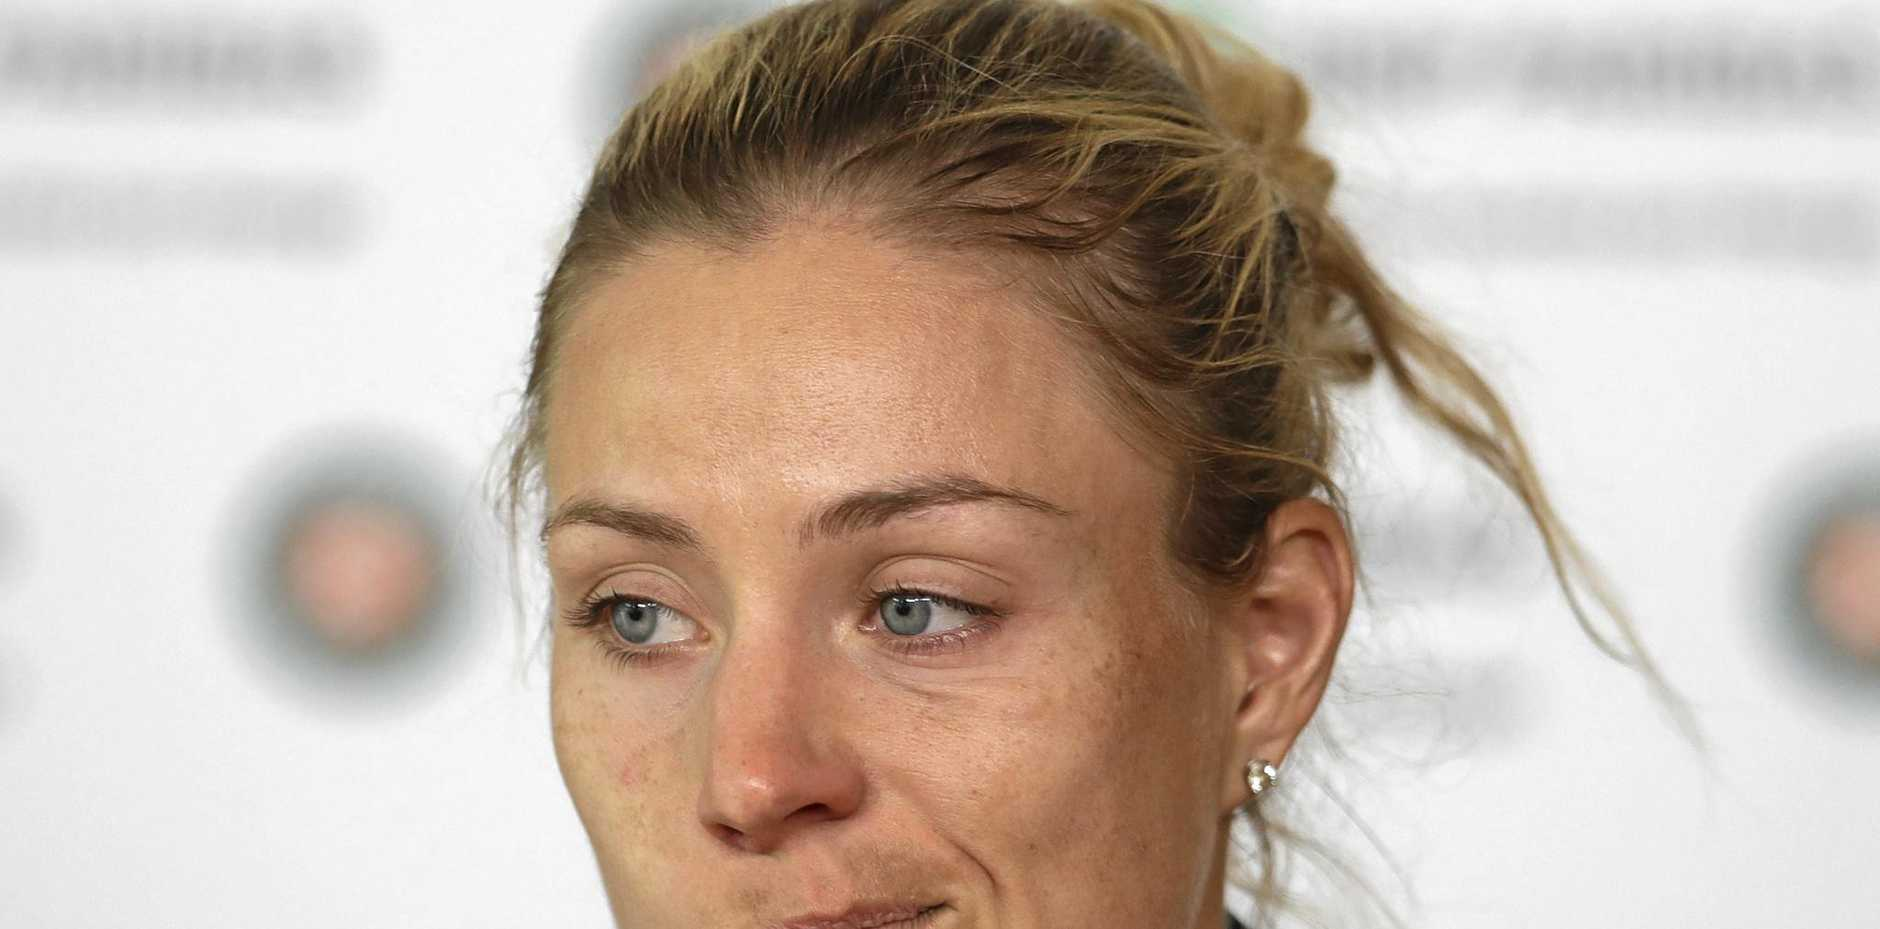 World No.1 Angelique Kerber shows her disappointment after losing to Russian Ekaterina Makarova in the first round of the French Open tennis tournament.